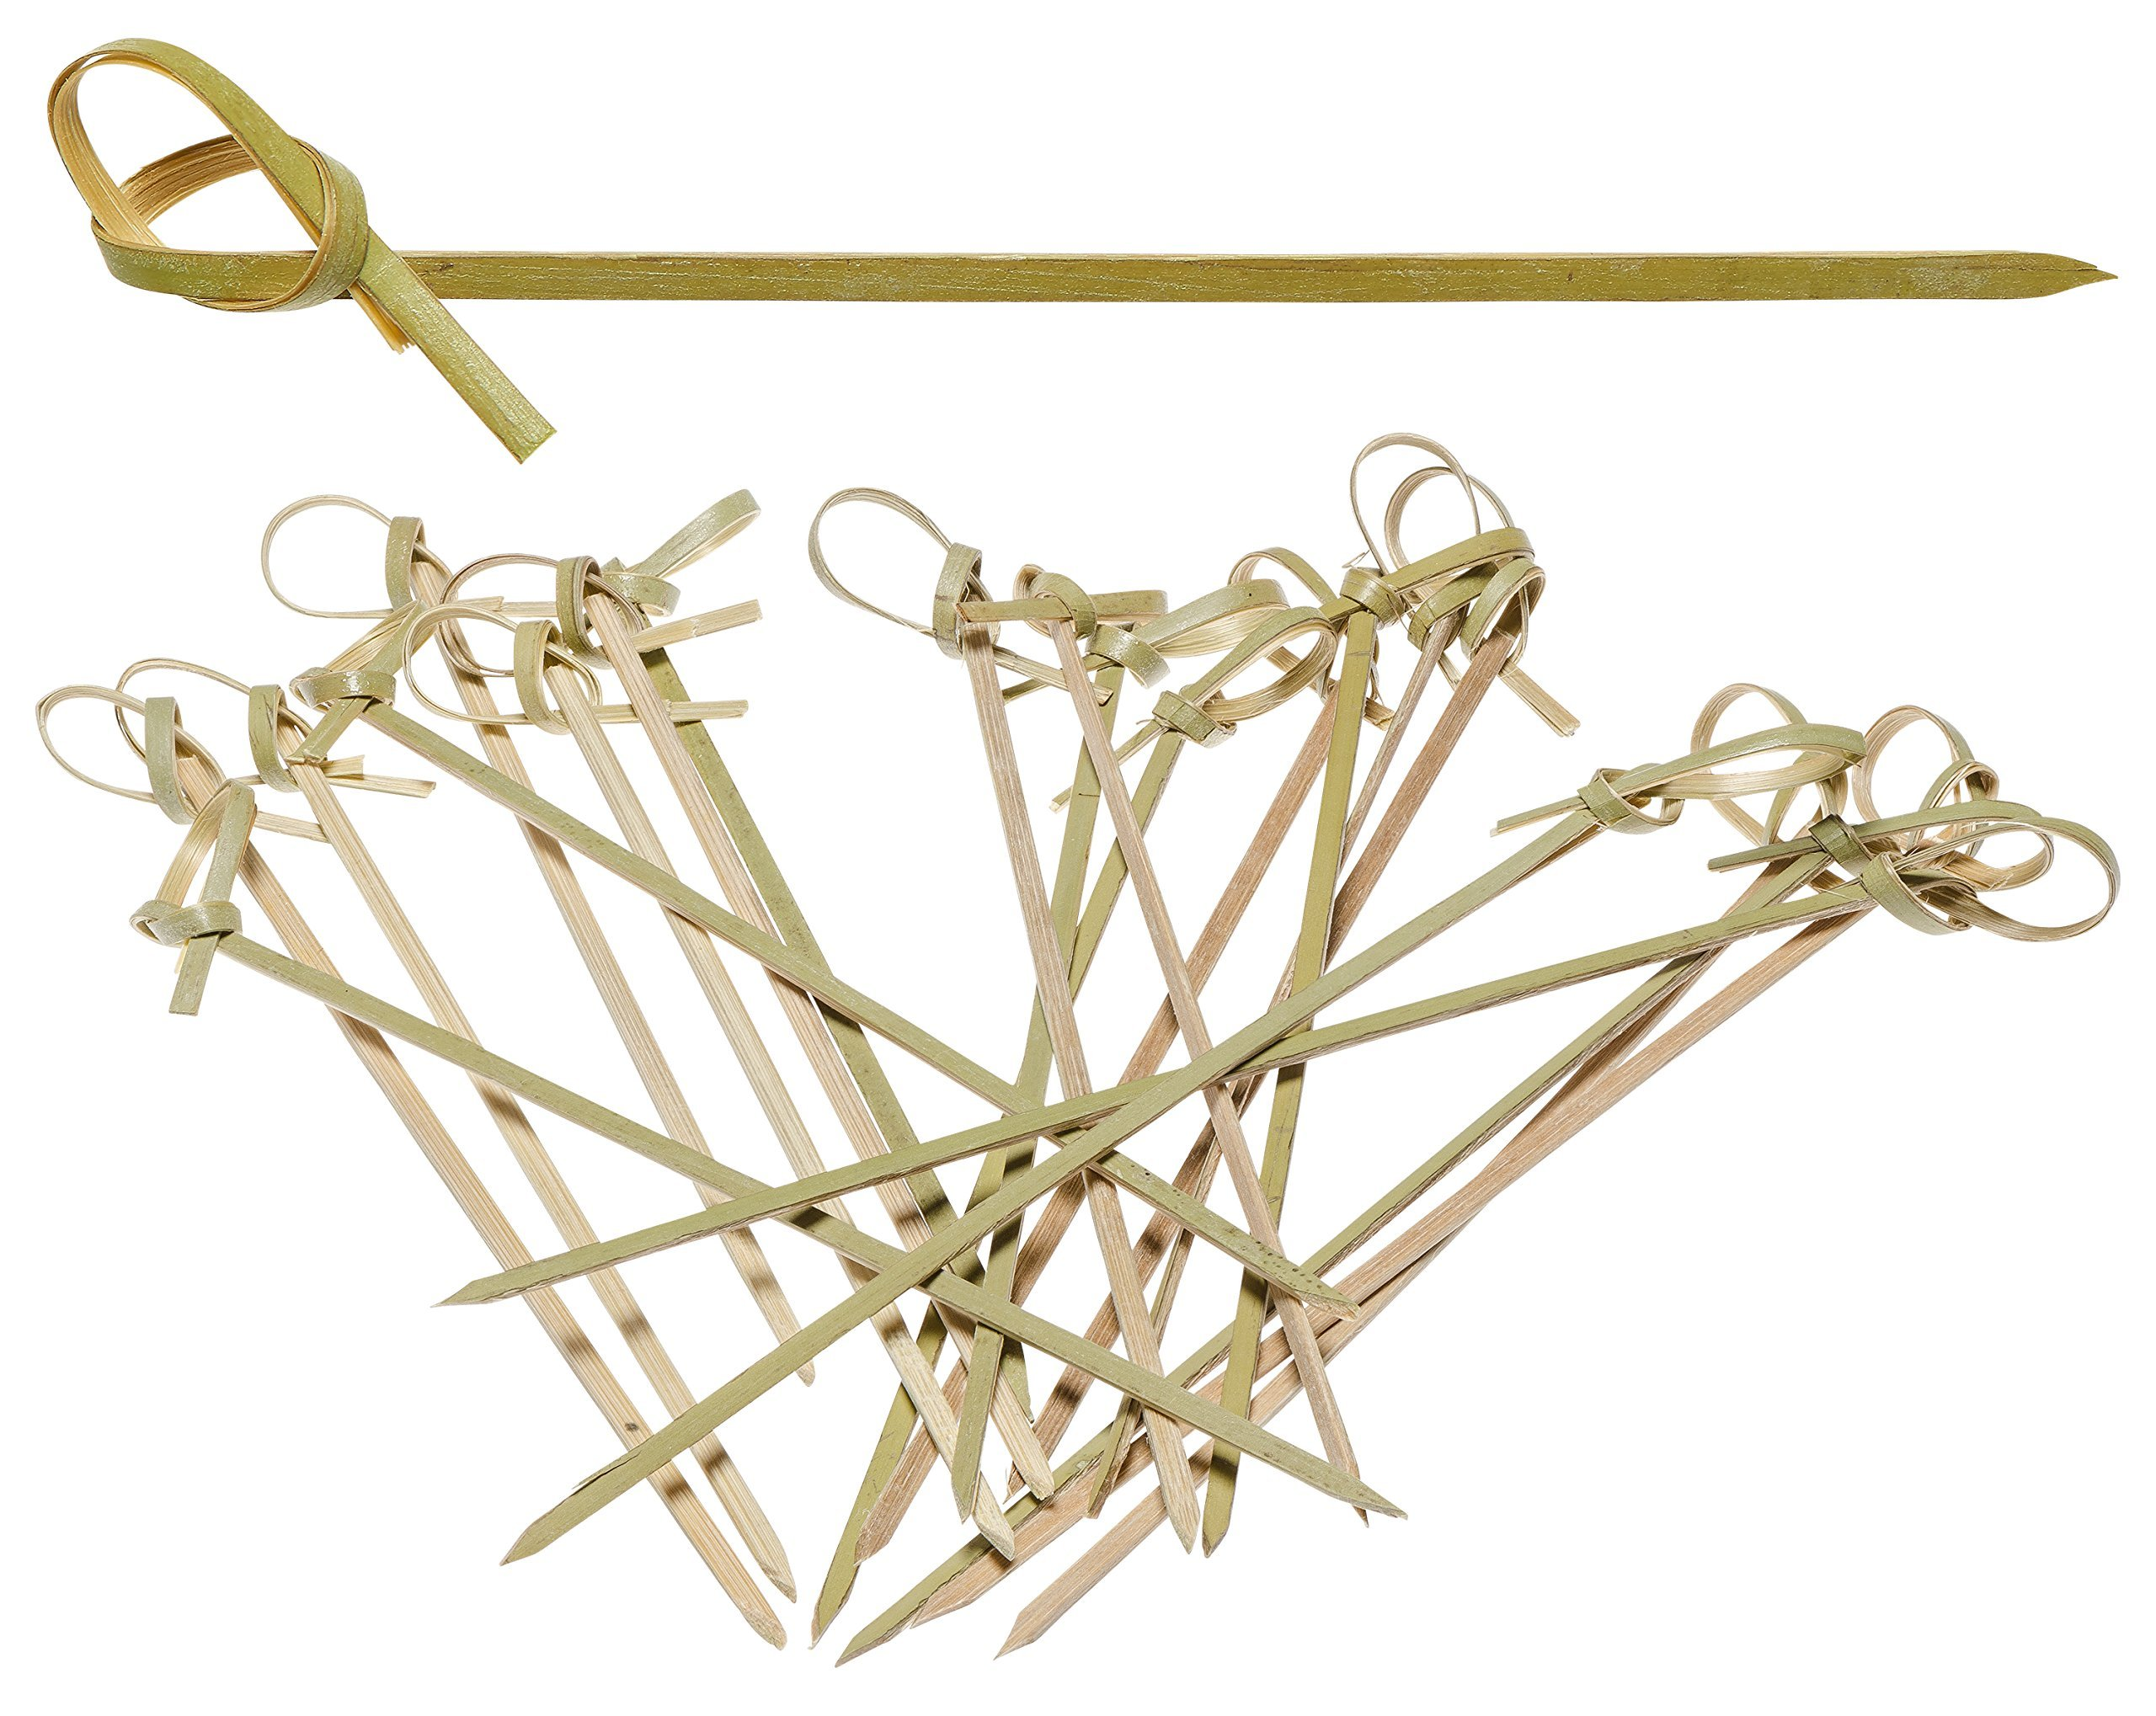 Prexware Bamboo Knot Skewers, 6 Inch Knotted Skewers, Twisted Ends Bamboo Picks Cocktail Picks 100 Ct